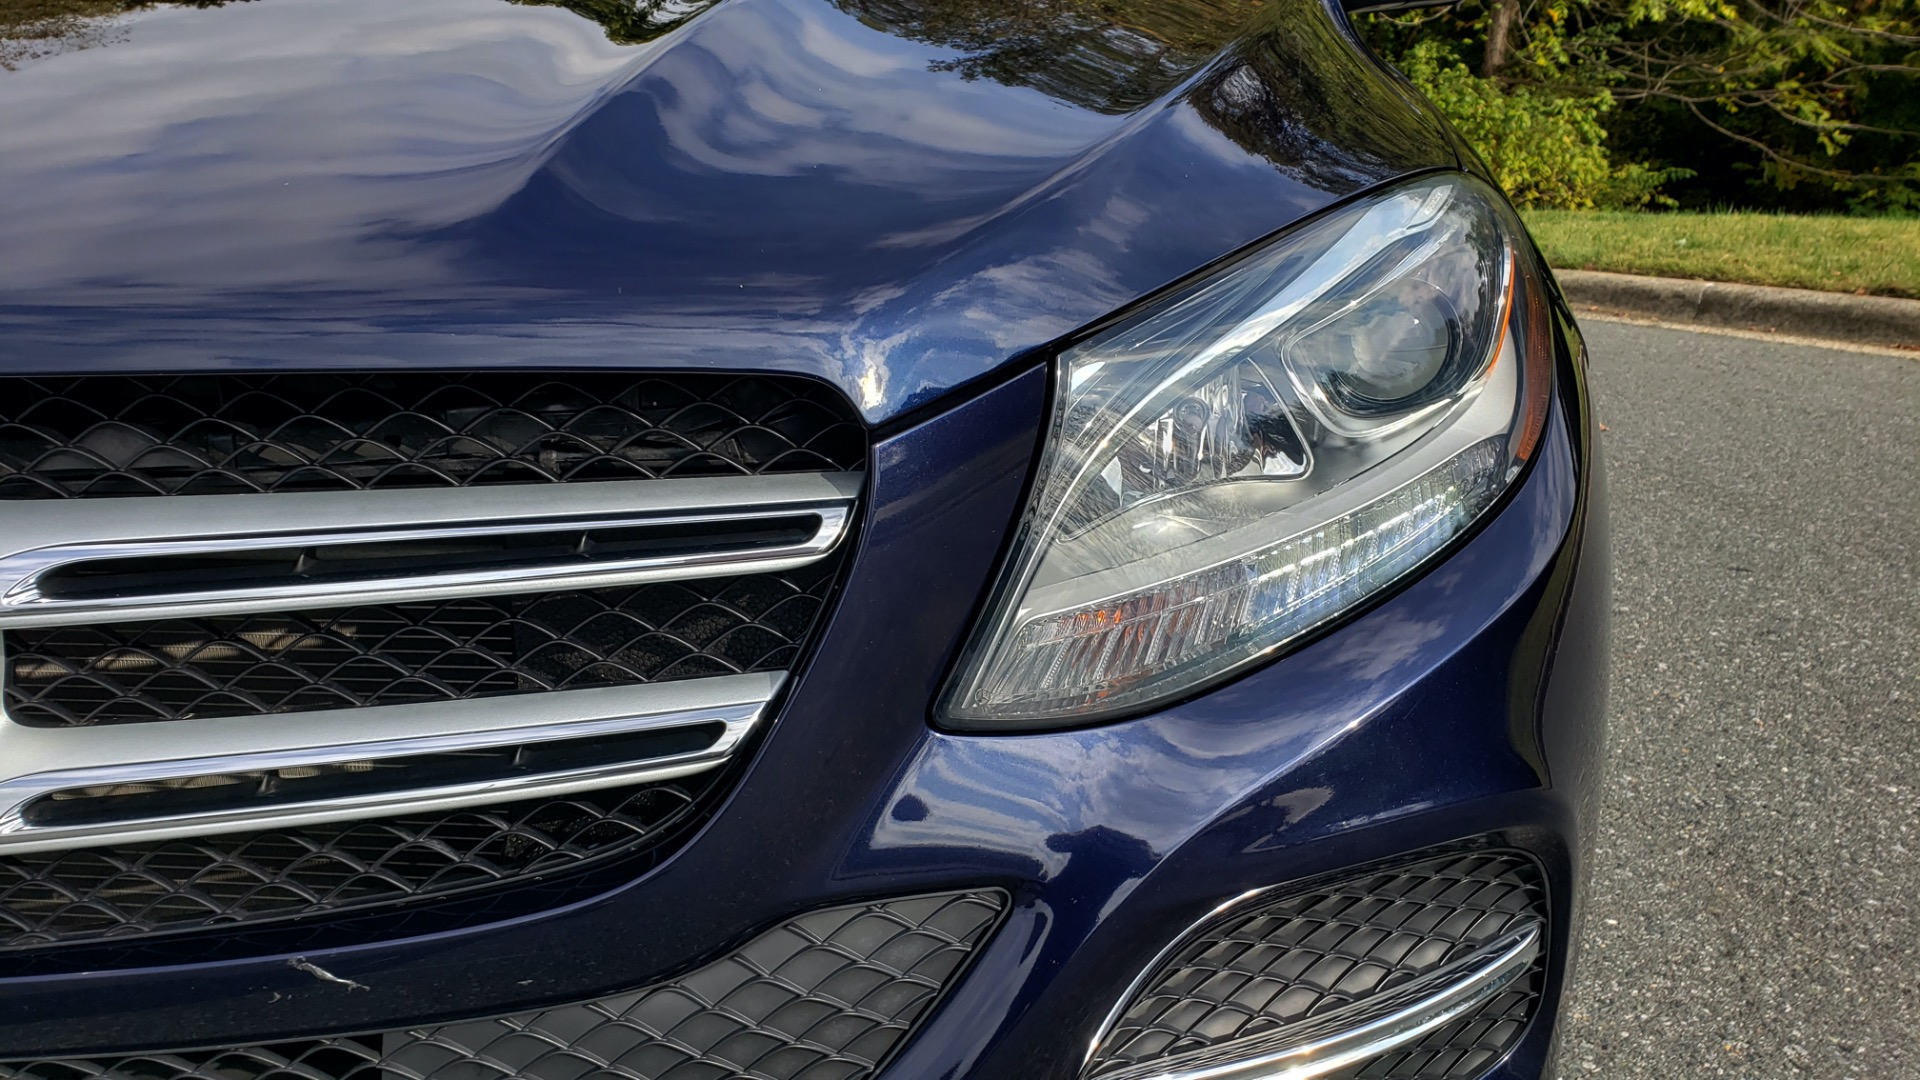 Used 2016 Mercedes-Benz GLE 350 PREMIUM / NAV / SUNROOF / BACK-UP CAMERA / LANE TRACKING for sale Sold at Formula Imports in Charlotte NC 28227 30